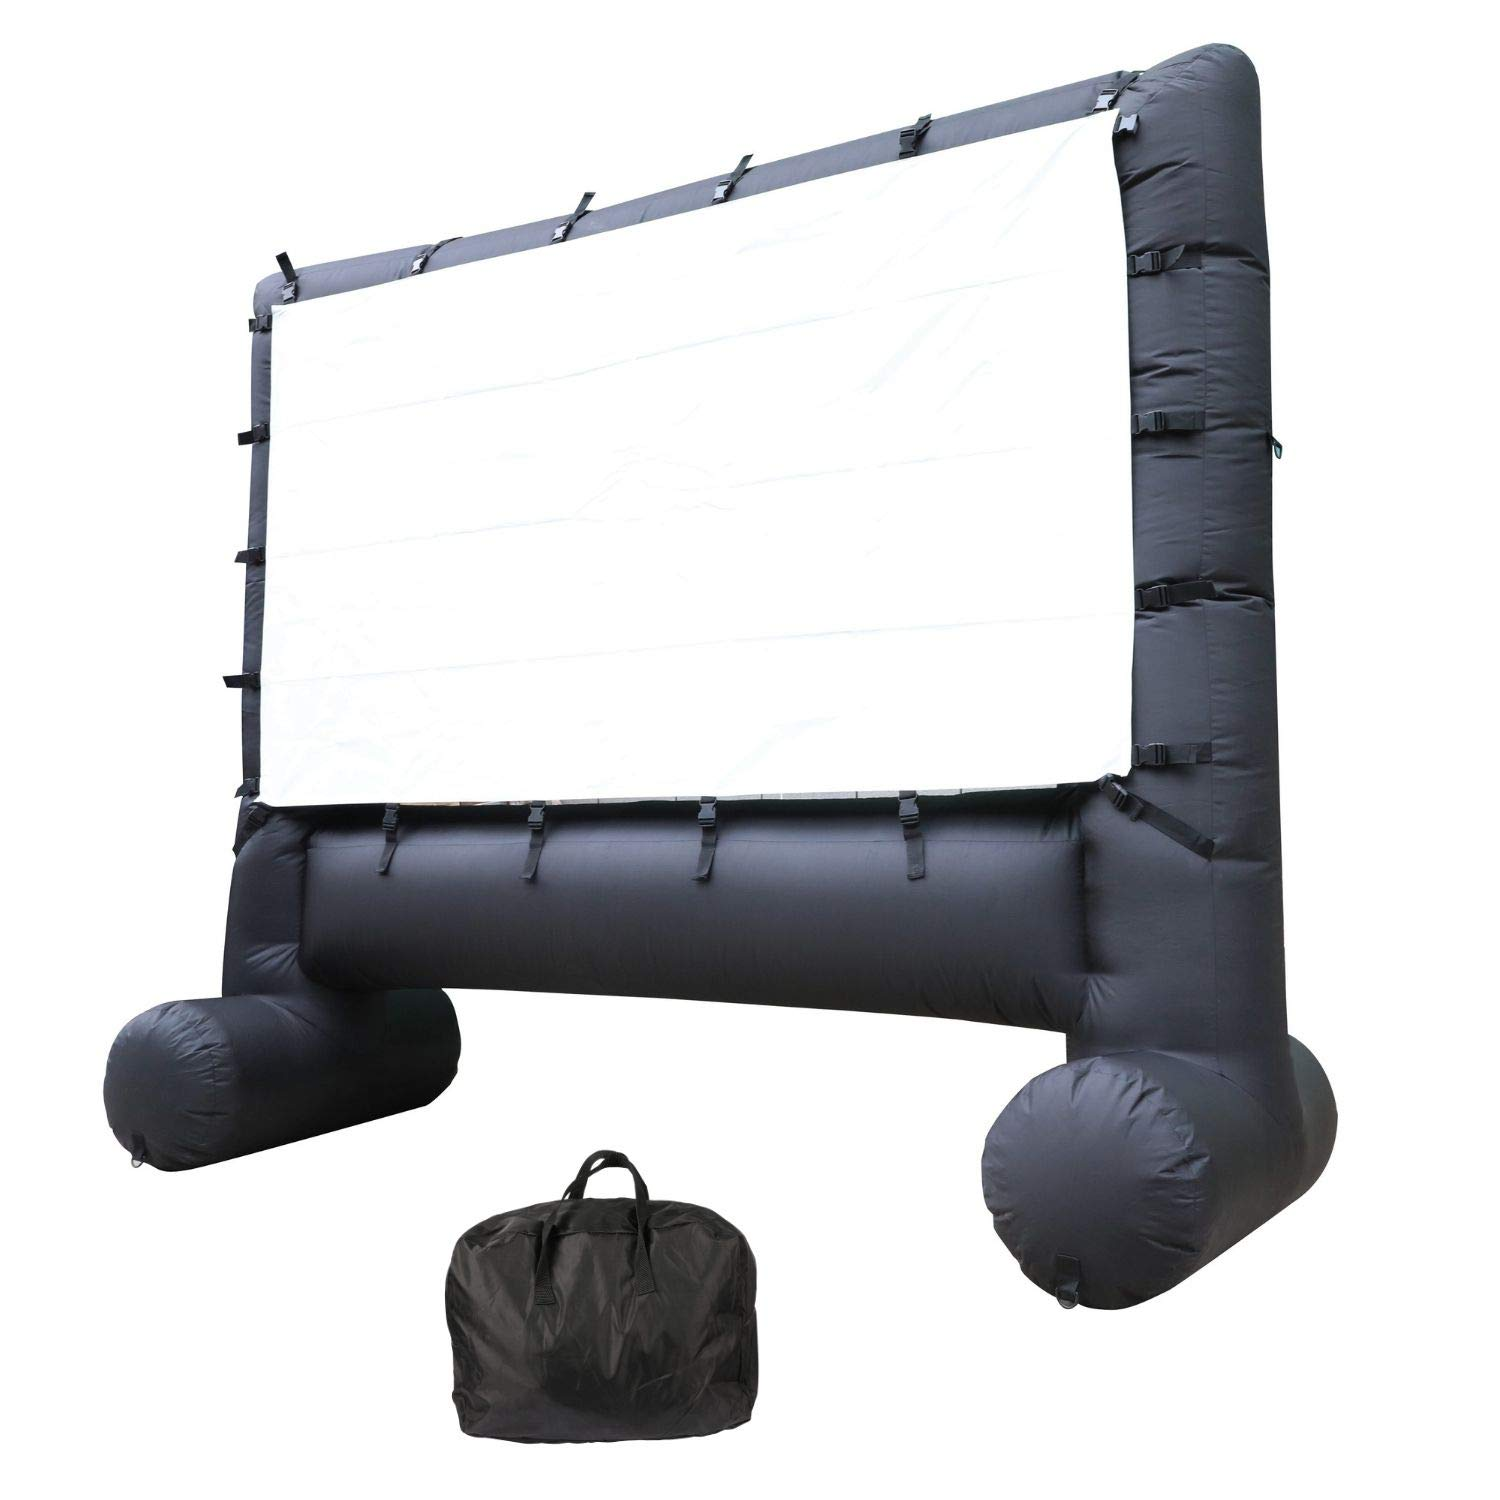 Houseables Projector Screen, Inflatable Outdoor Movie TV, 8.5', 3.5', 10', 1 Pack, Black, Large, Polyester, Portable, Blow Up, Inflatables, for Parties, Movies, Backyard Theater, Family, Includes Fan